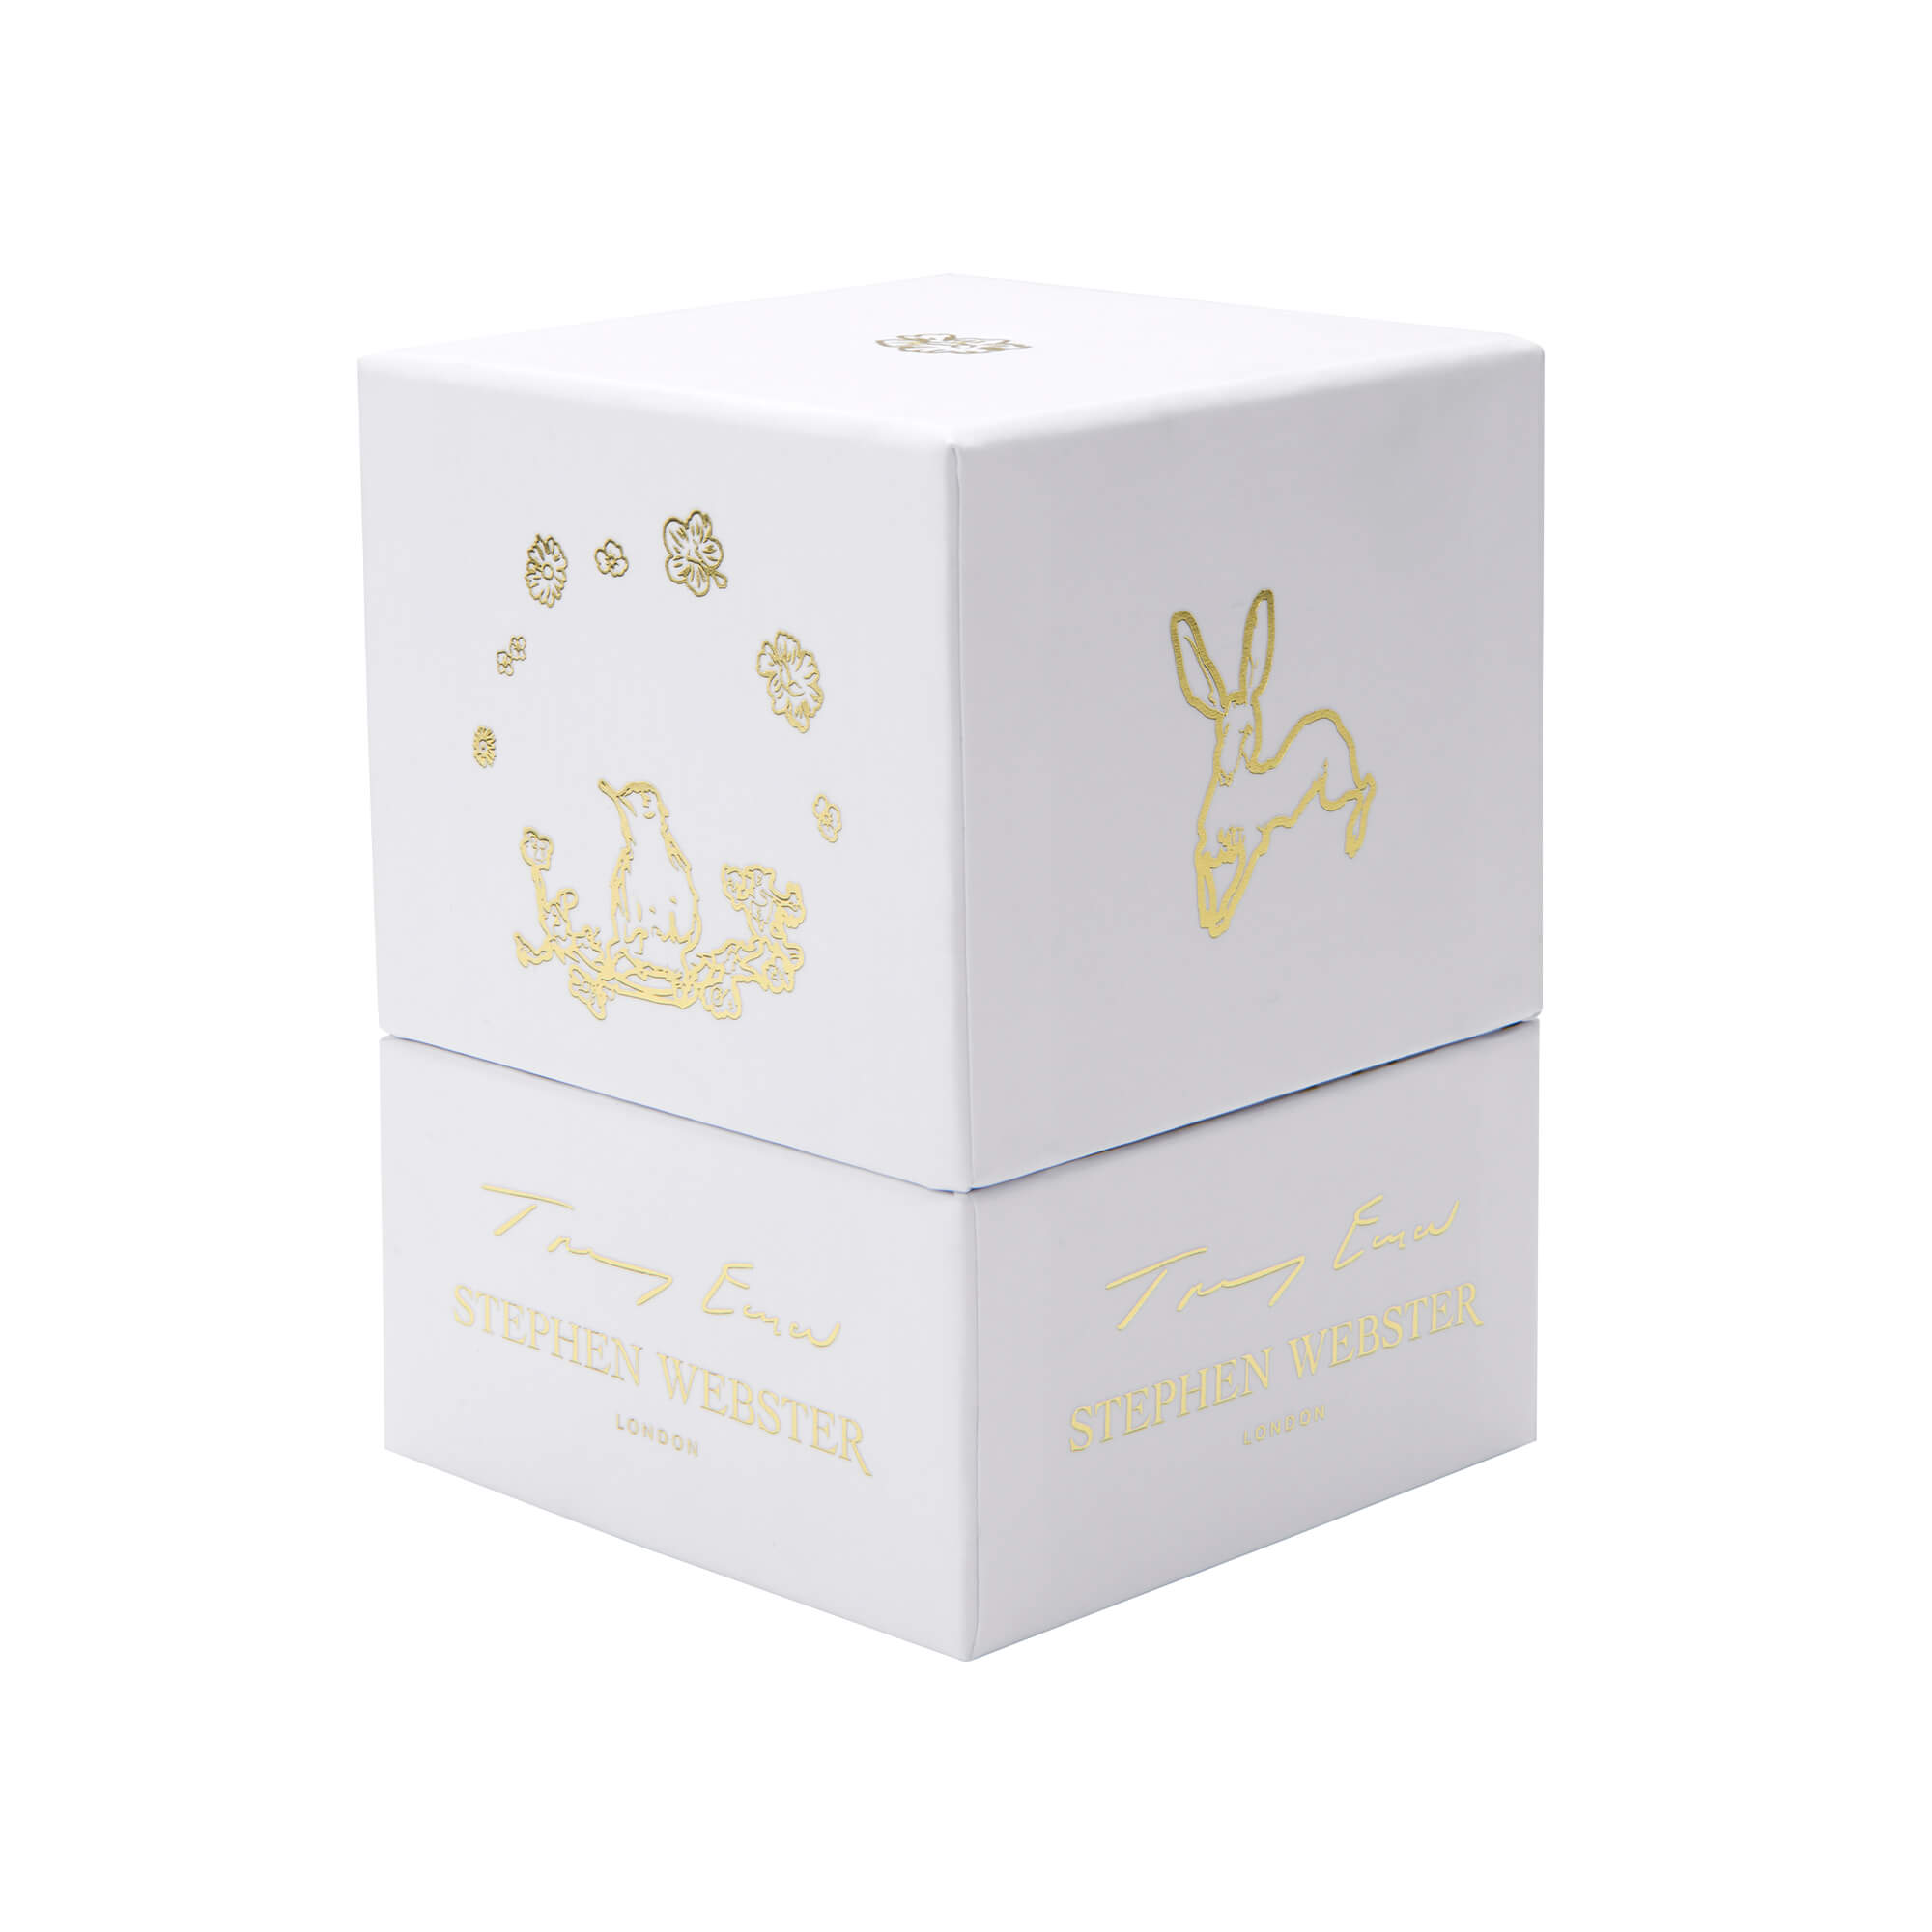 Tracey Emin Scented Animals Candle | Stephen Webster